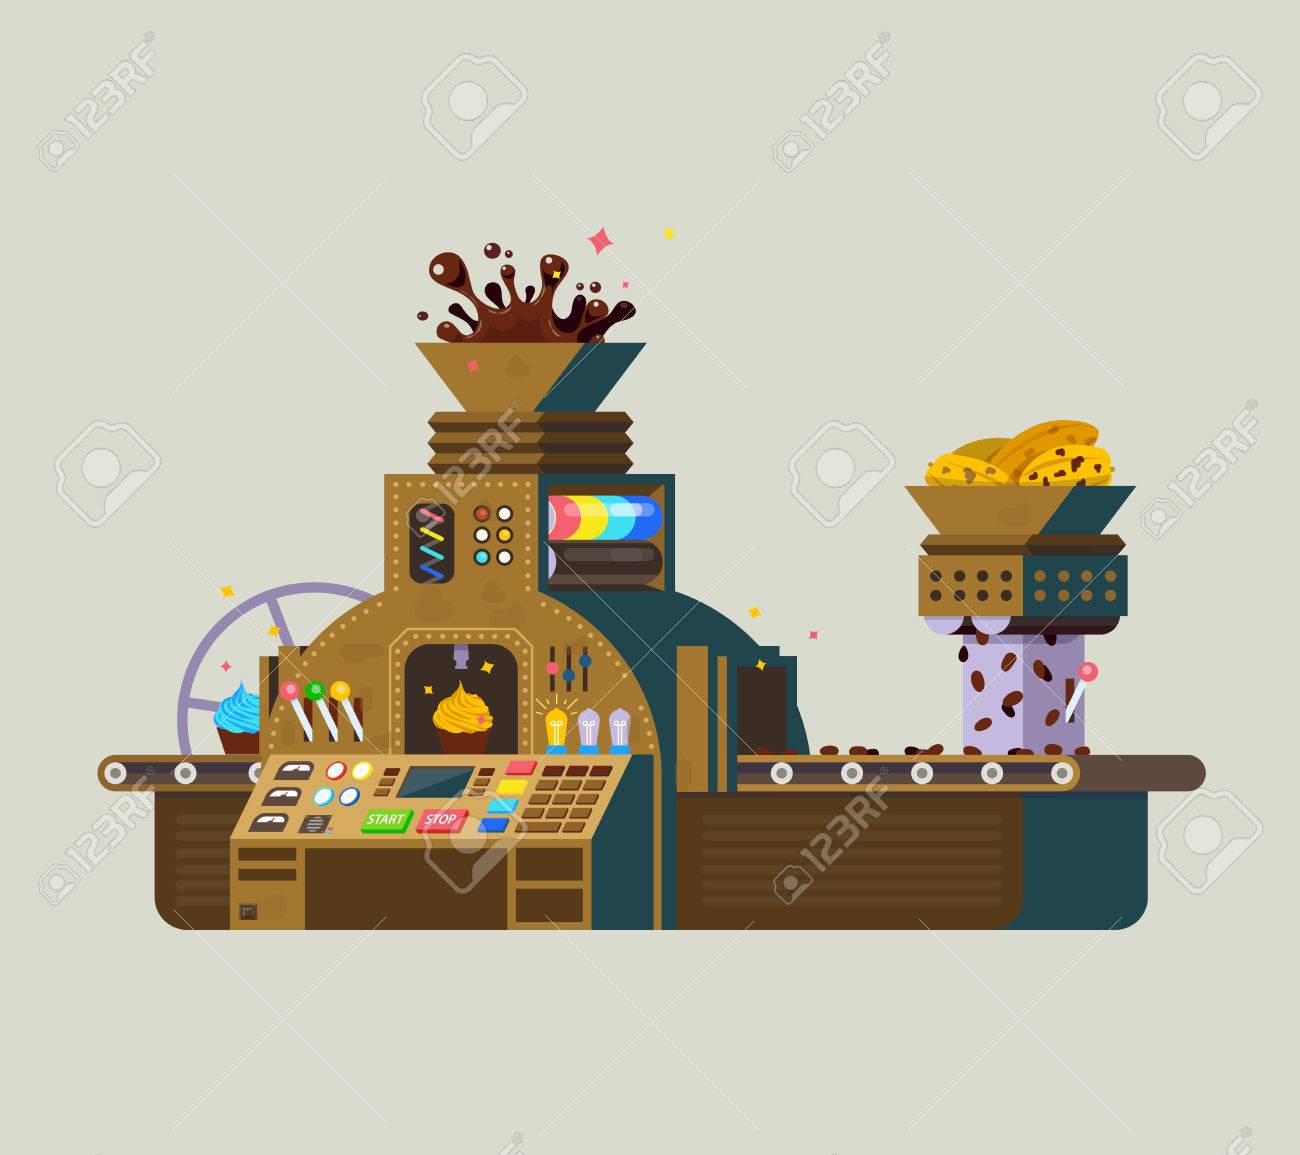 Chocolate Factory vector iilustration. Print of creative chocolate food preparation, made from cacao seeds. - 70995277